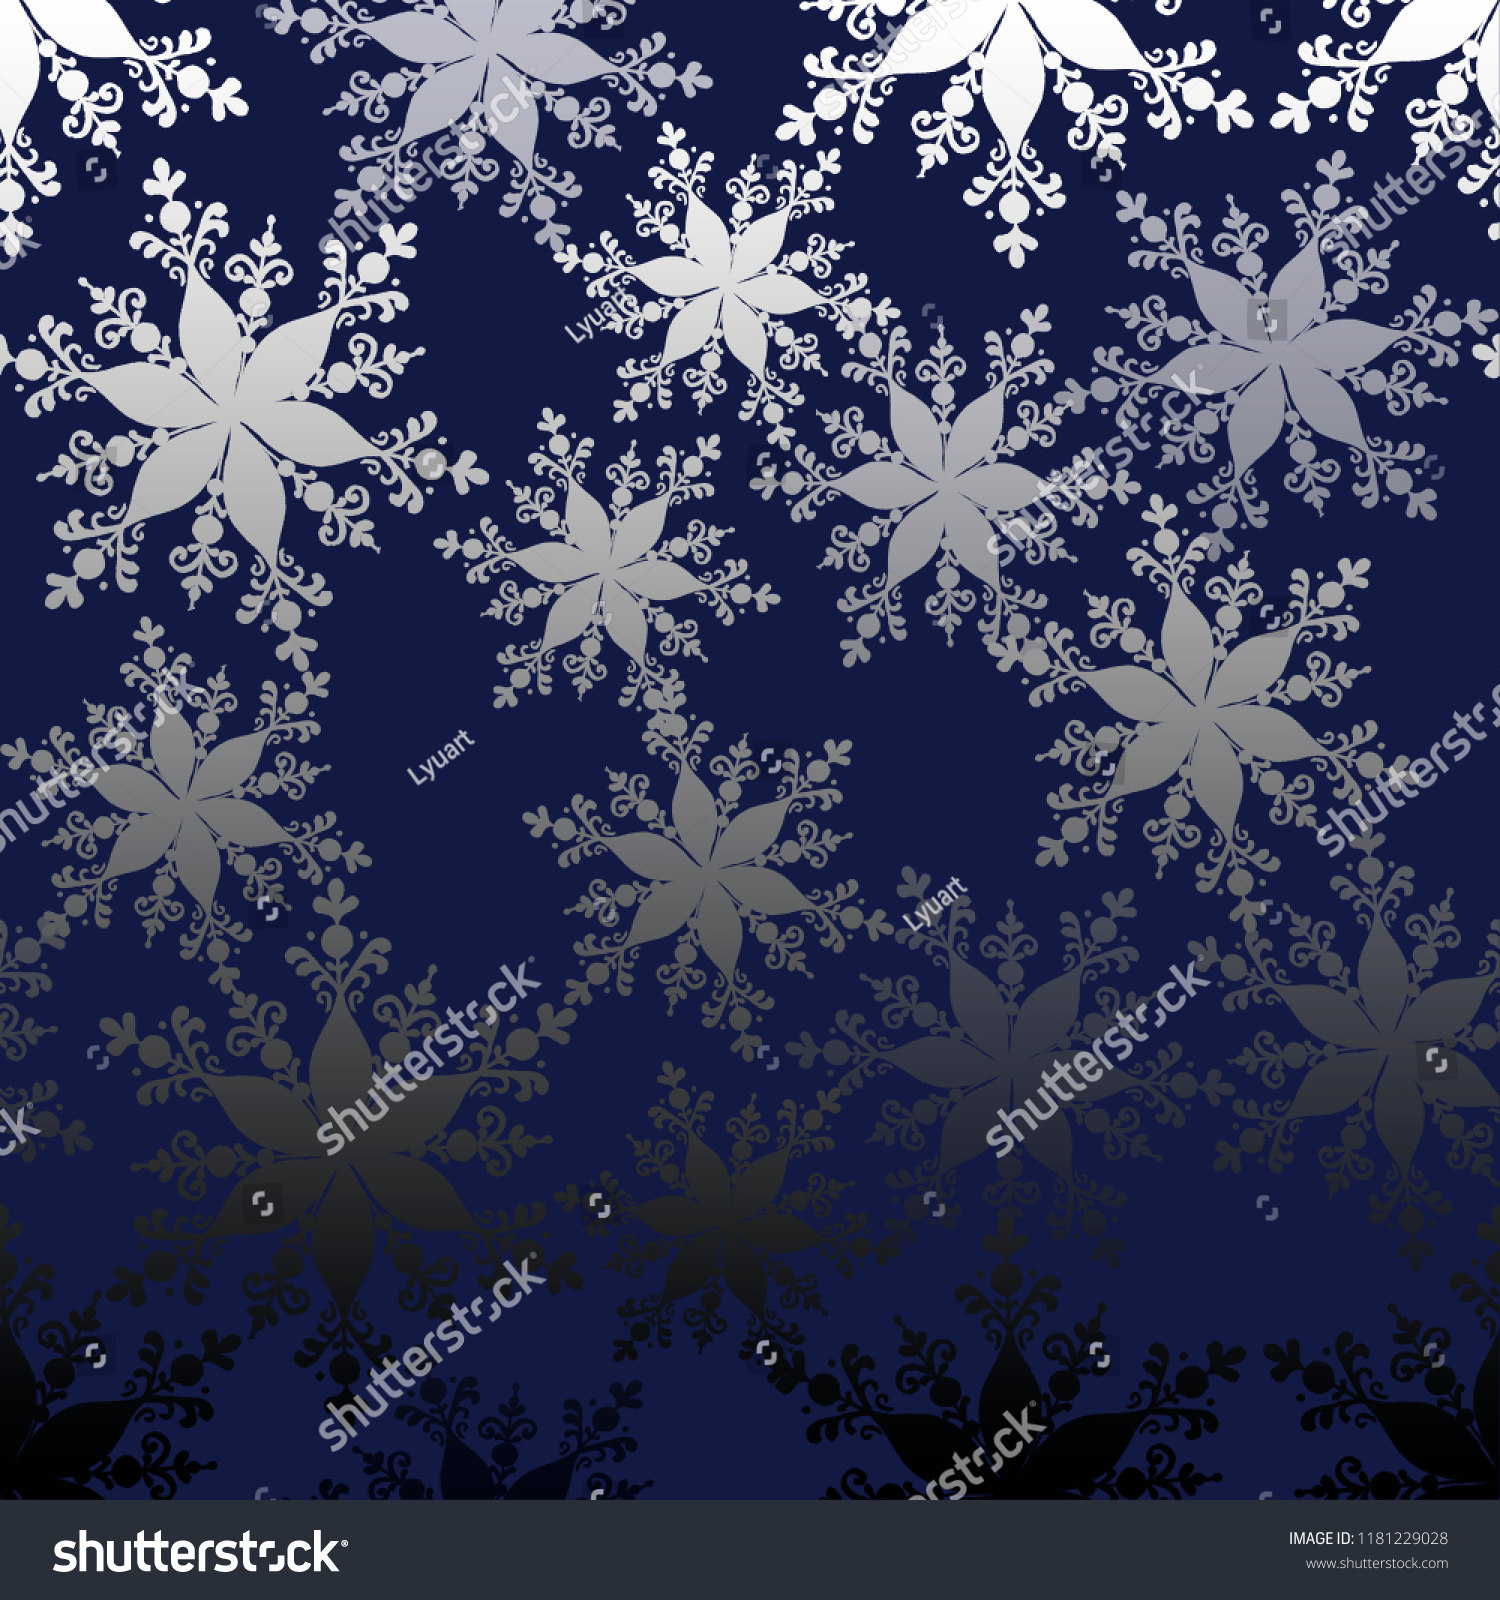 seamless pattern with snowflakes for backgrounds textil design wallpapers hand drawing watecolor